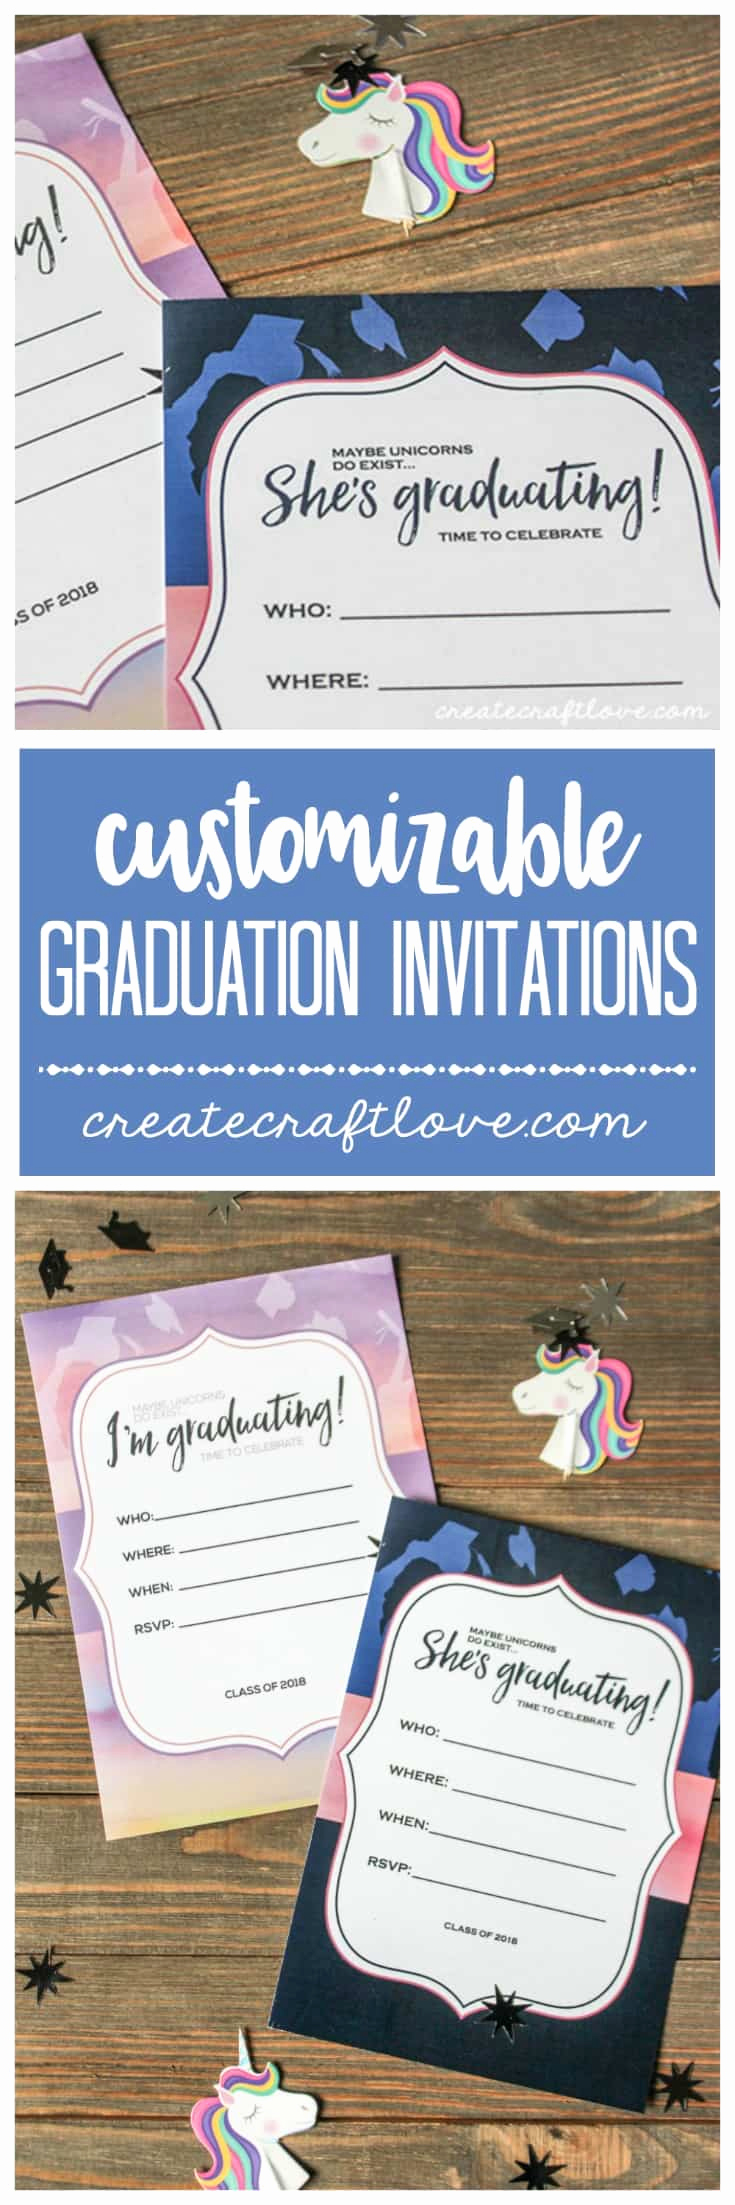 Make Your Own Graduation Invitation Unique Customizable Graduation Invitations Create Craft Love